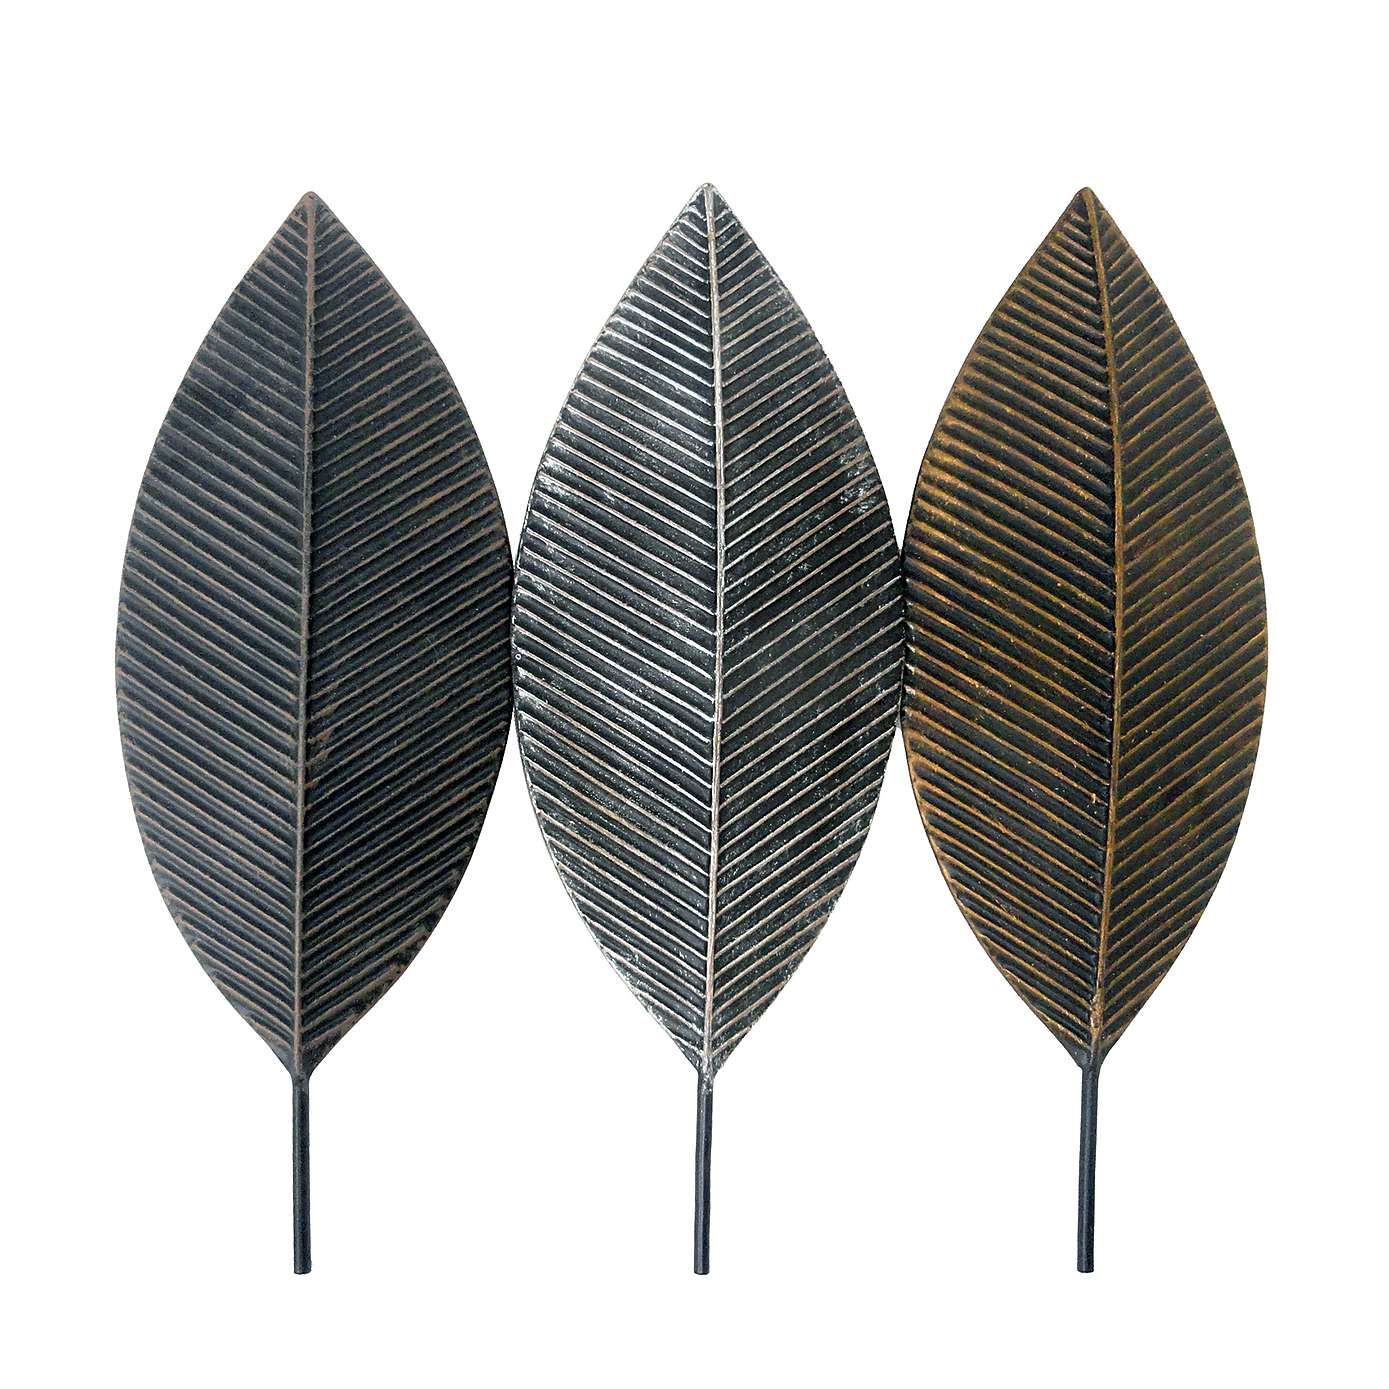 Three Leaves Metal Wall Art | Dunelm  sc 1 st  Pinterest & Three Leaves Metal Wall Art | Dunelm | Hallway | Pinterest